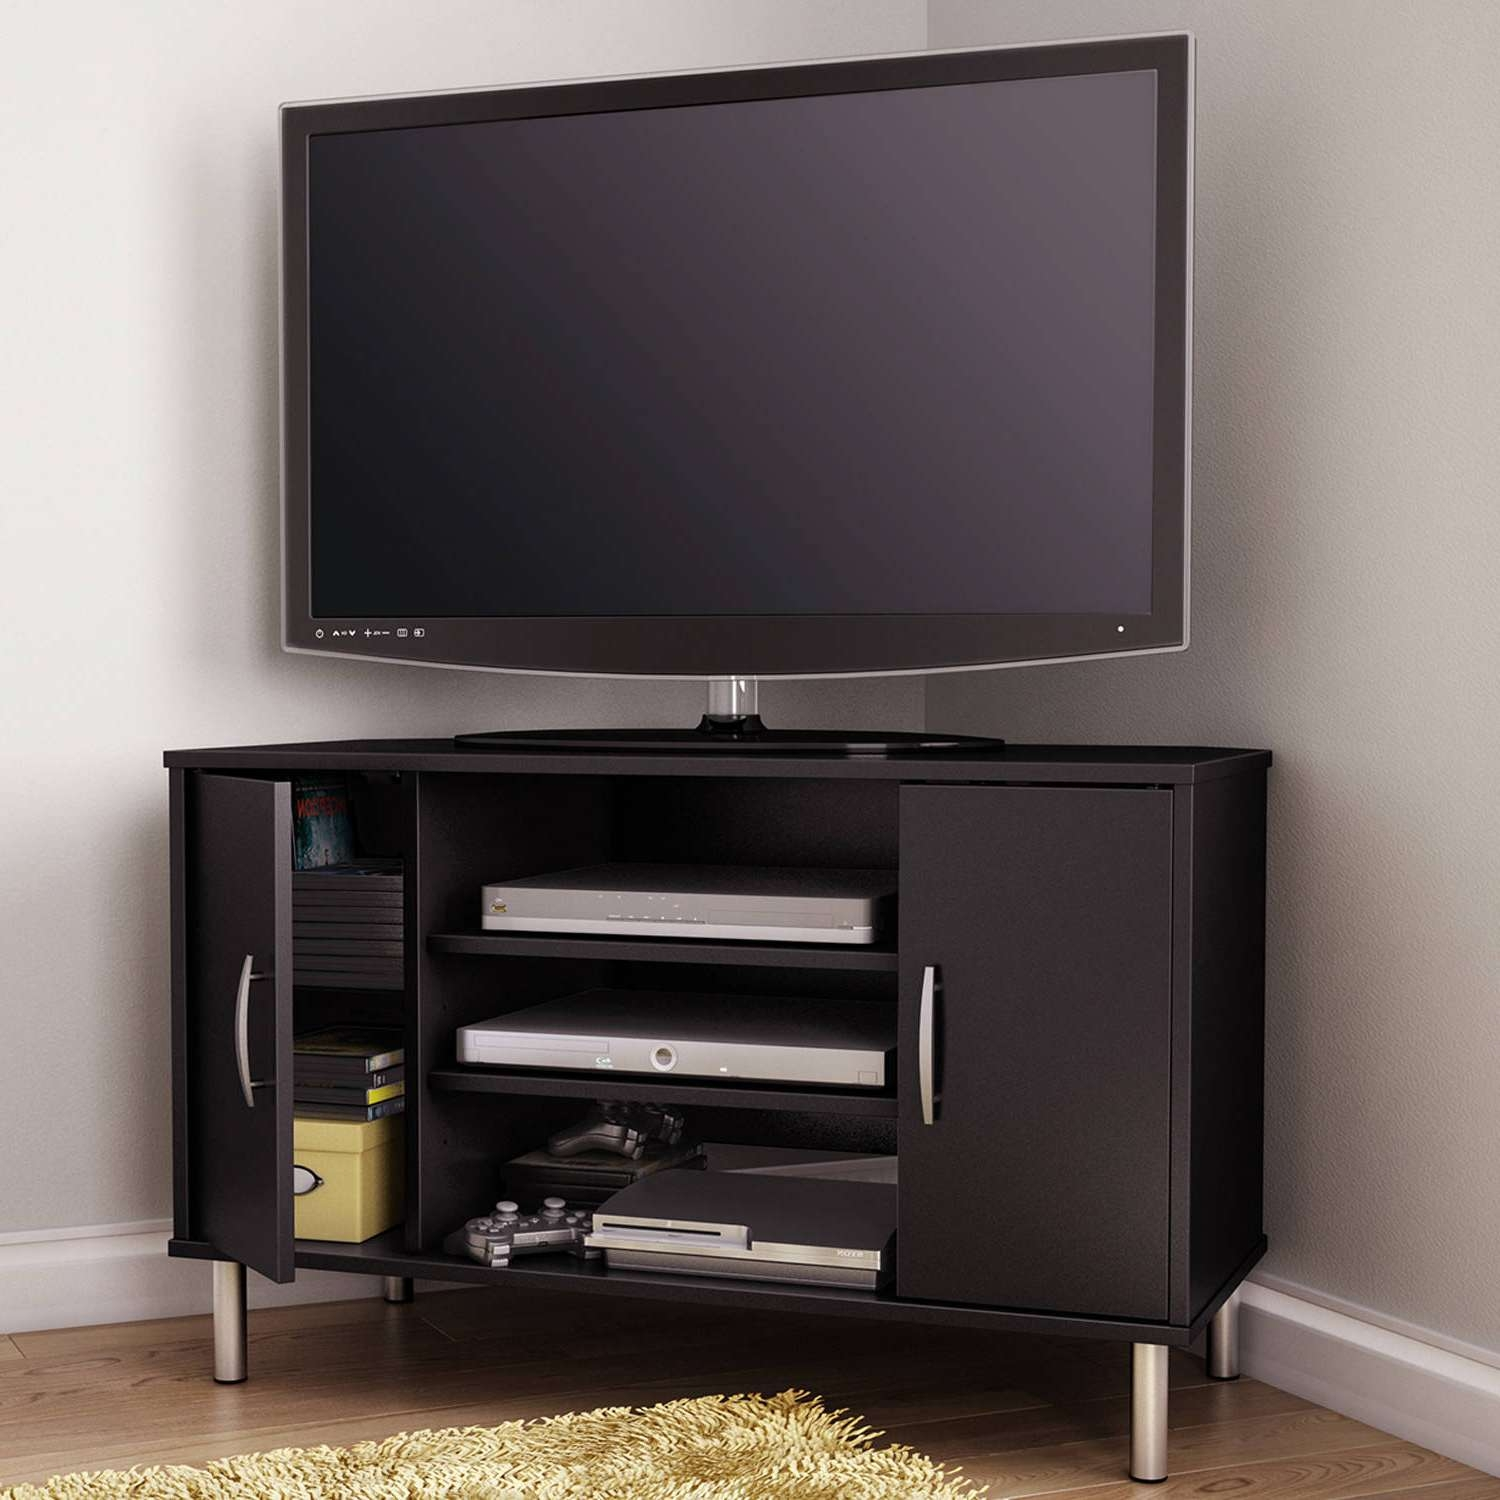 Tv Stand : Corner Tv Stand For Inch 24Af711Bf819 1 Stands Tvs At Regarding Grey Corner Tv Stands (View 17 of 20)